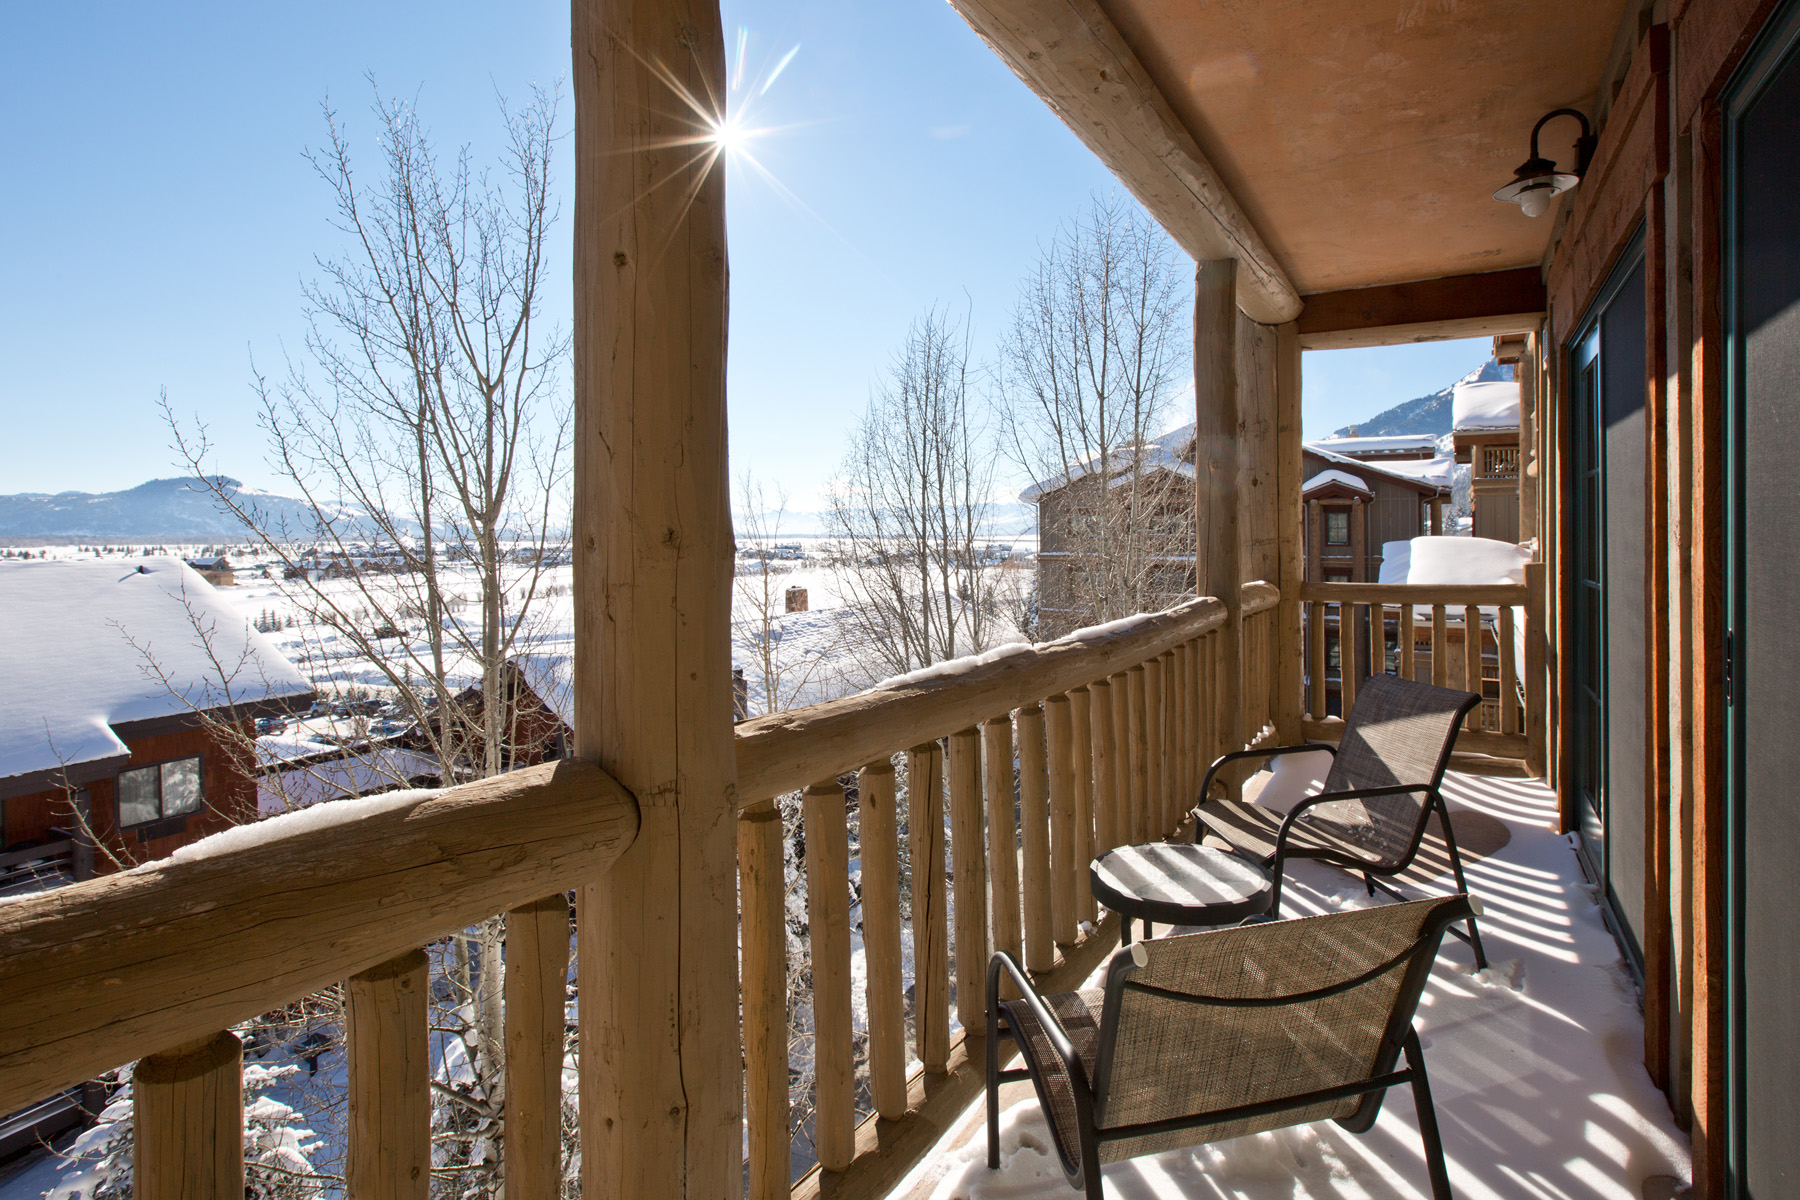 Condominium for Sale at 2 bdrm 2 bath condo in Teton Village 3385 W. Cody Lane units 301300 Teton Mountain Lodge Teton Village, Wyoming, 83025 Jackson Hole, United States